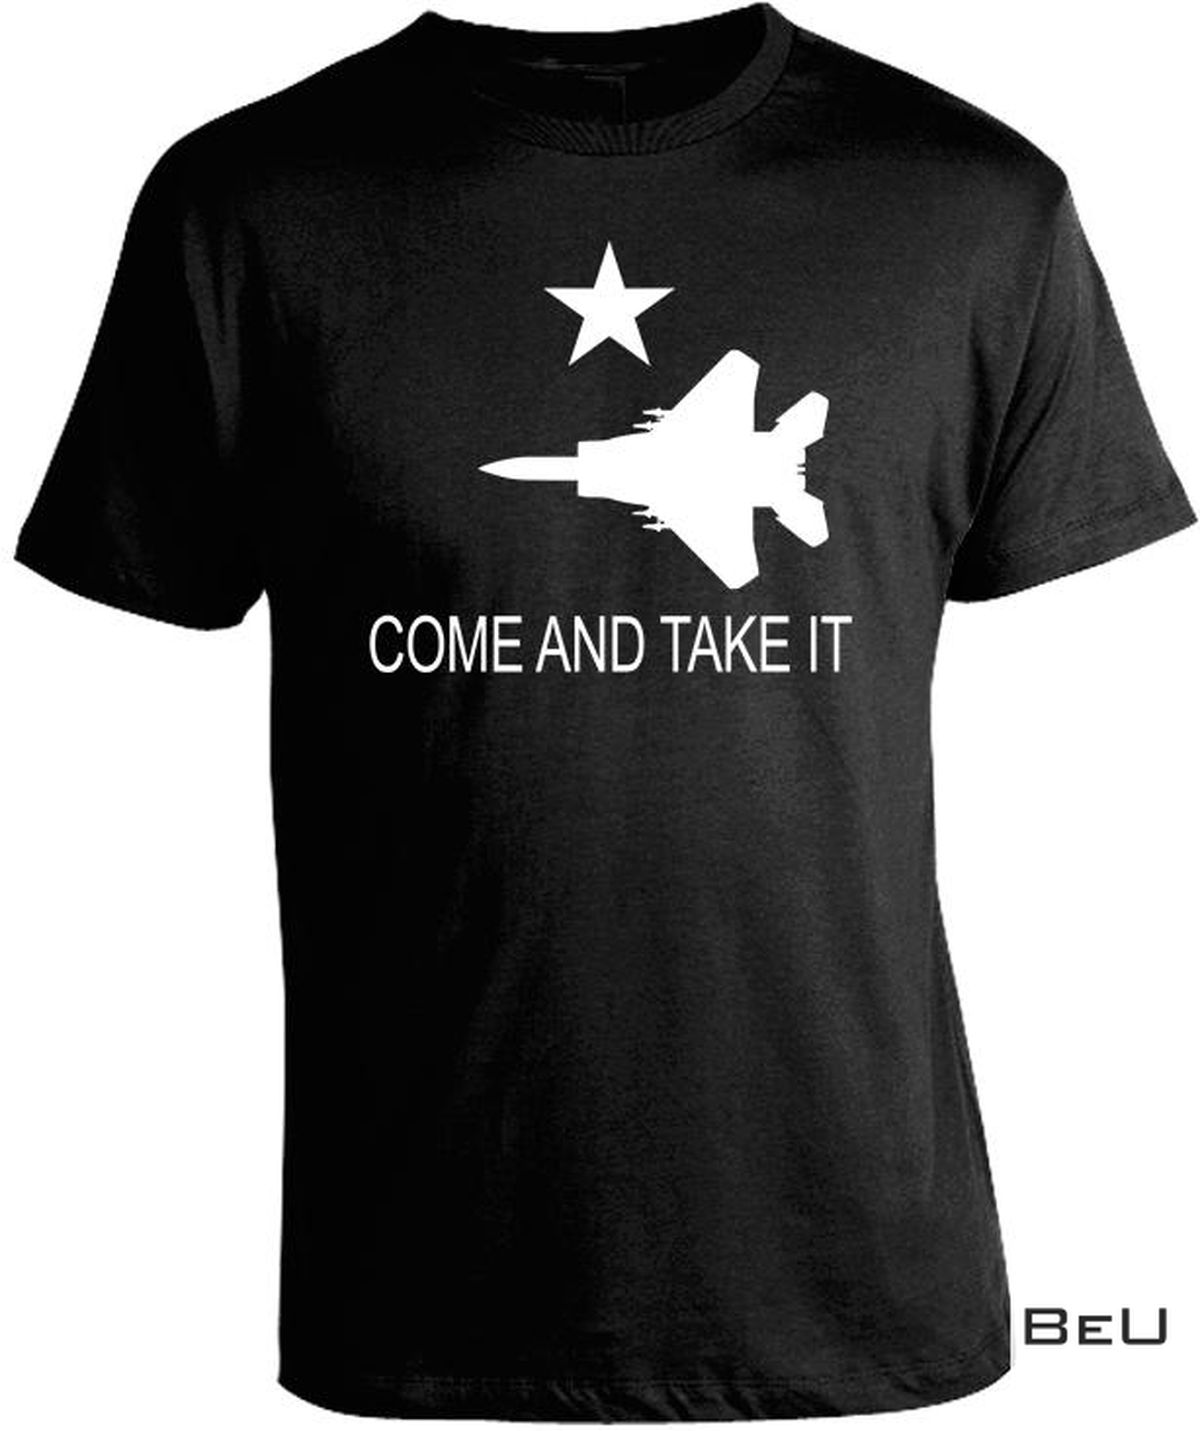 Come And Take It F-15 Shirt